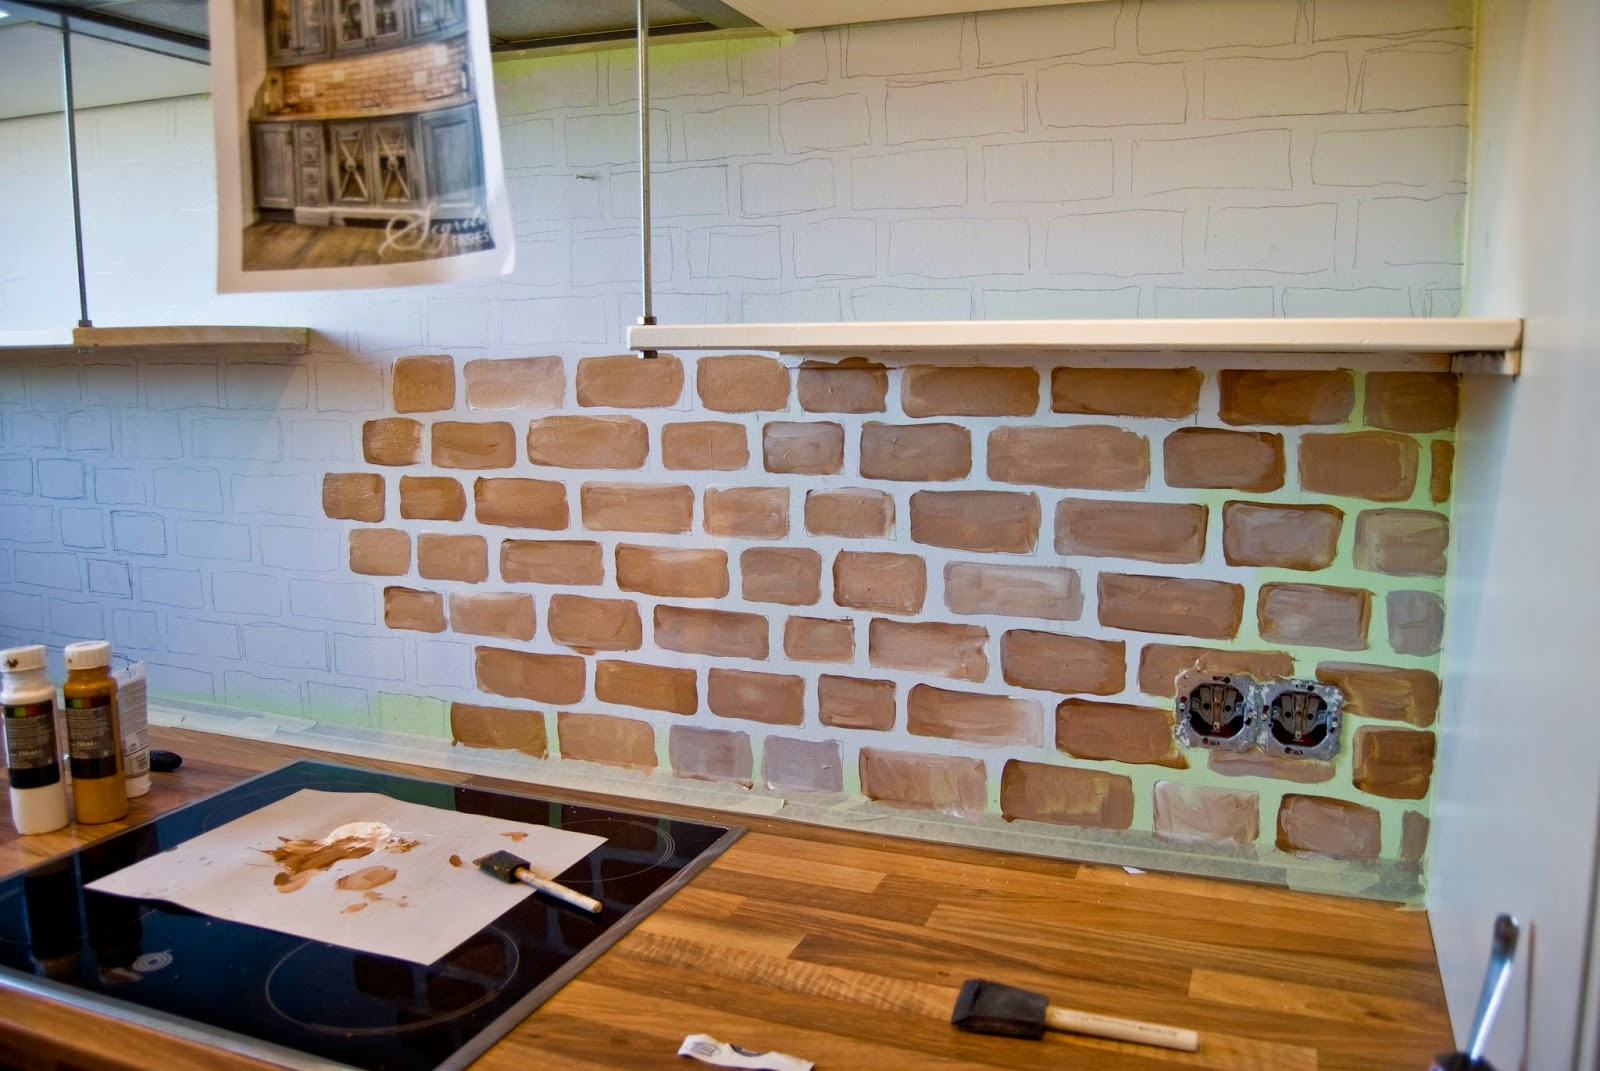 Painted Backsplash Ideas remodelaholic | tiny kitchen renovation with faux painted brick